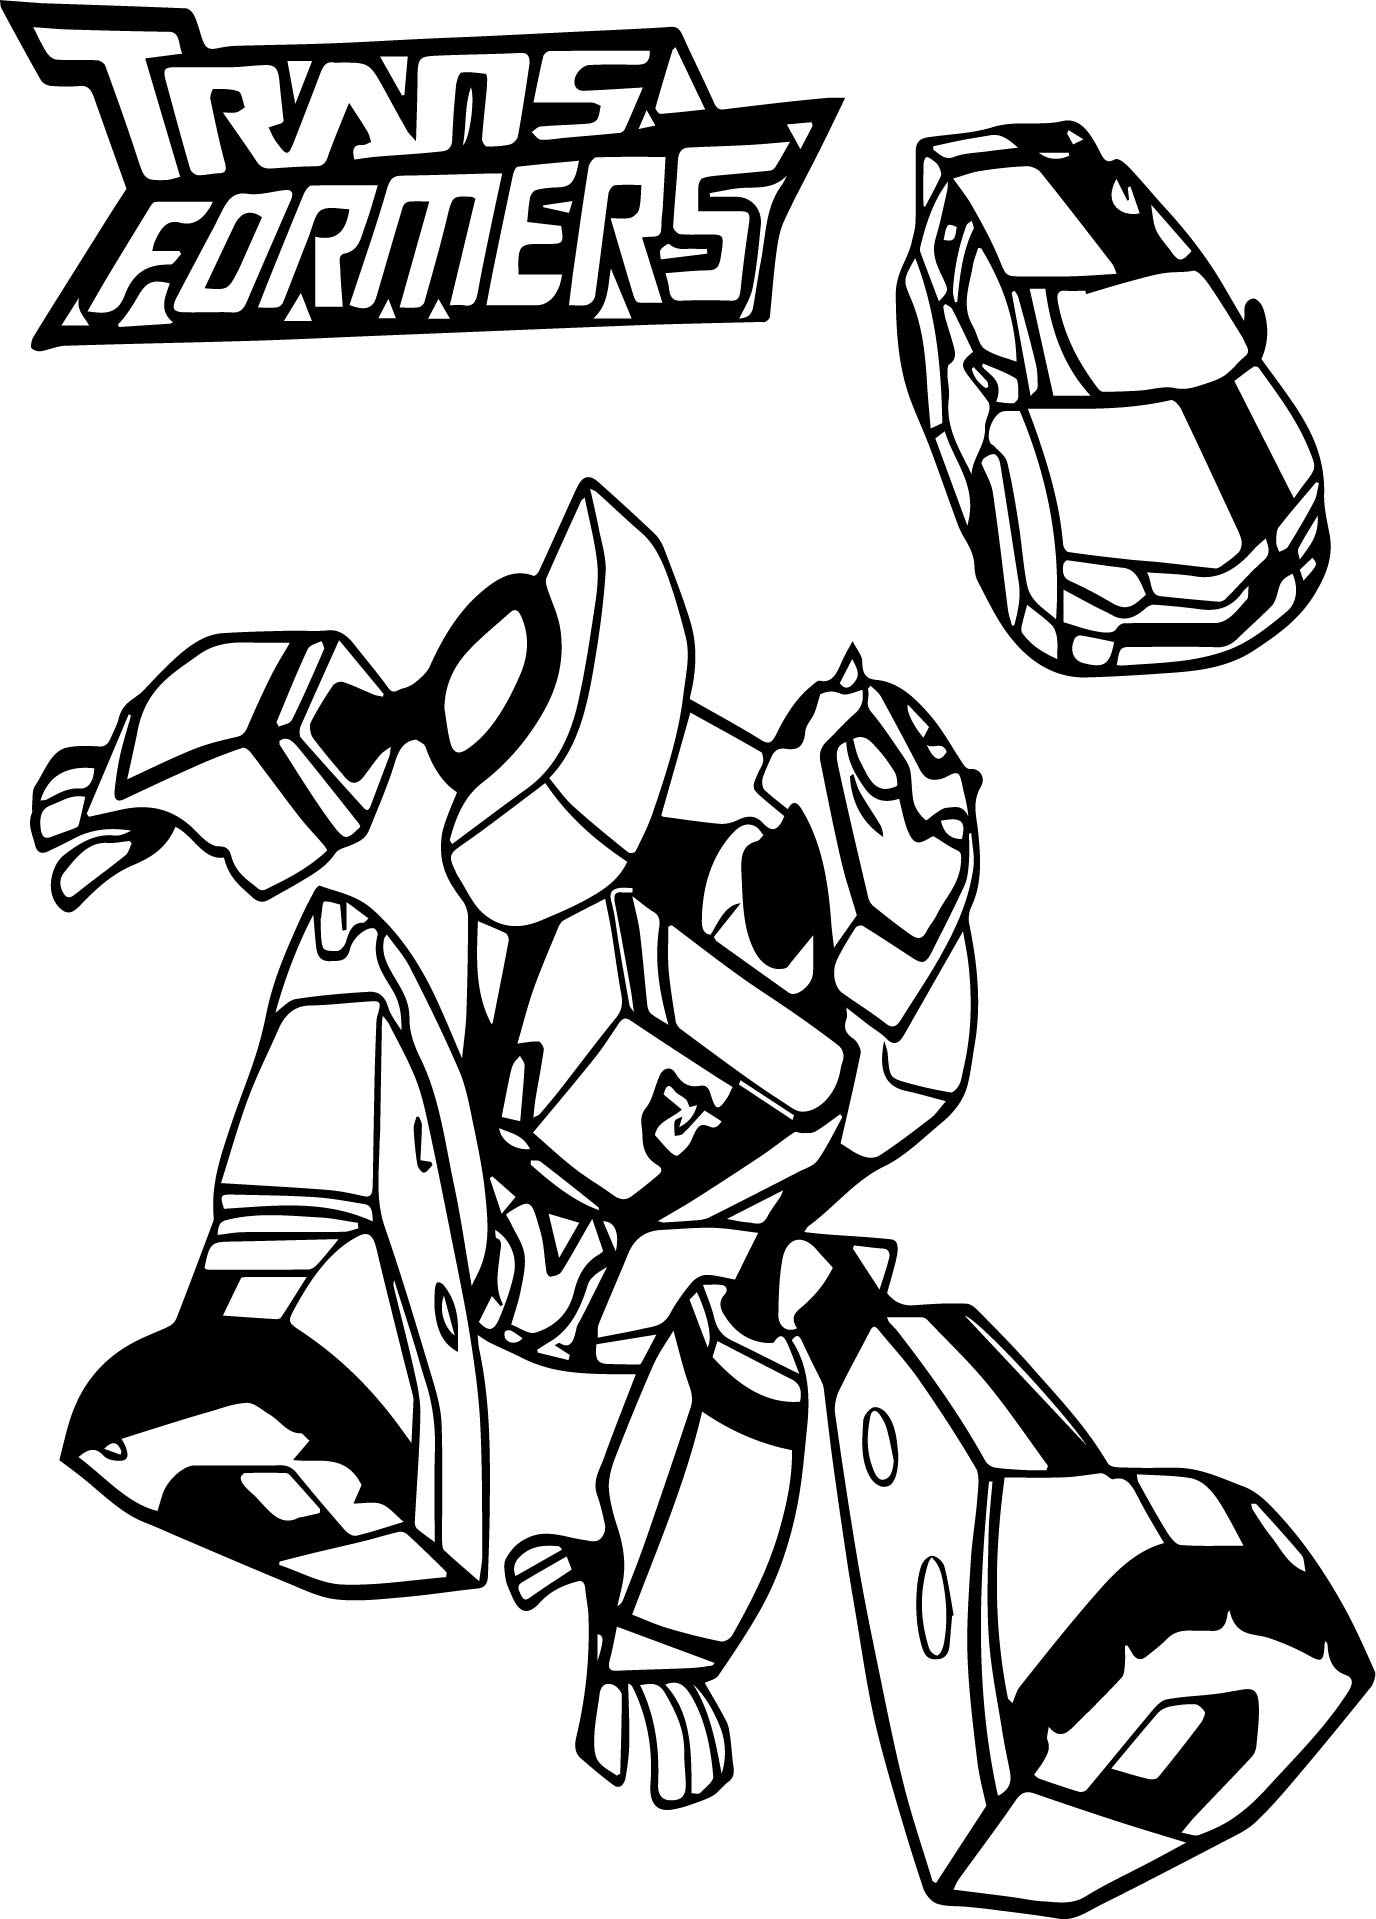 Transformers Coloring Book Games Coloring Page